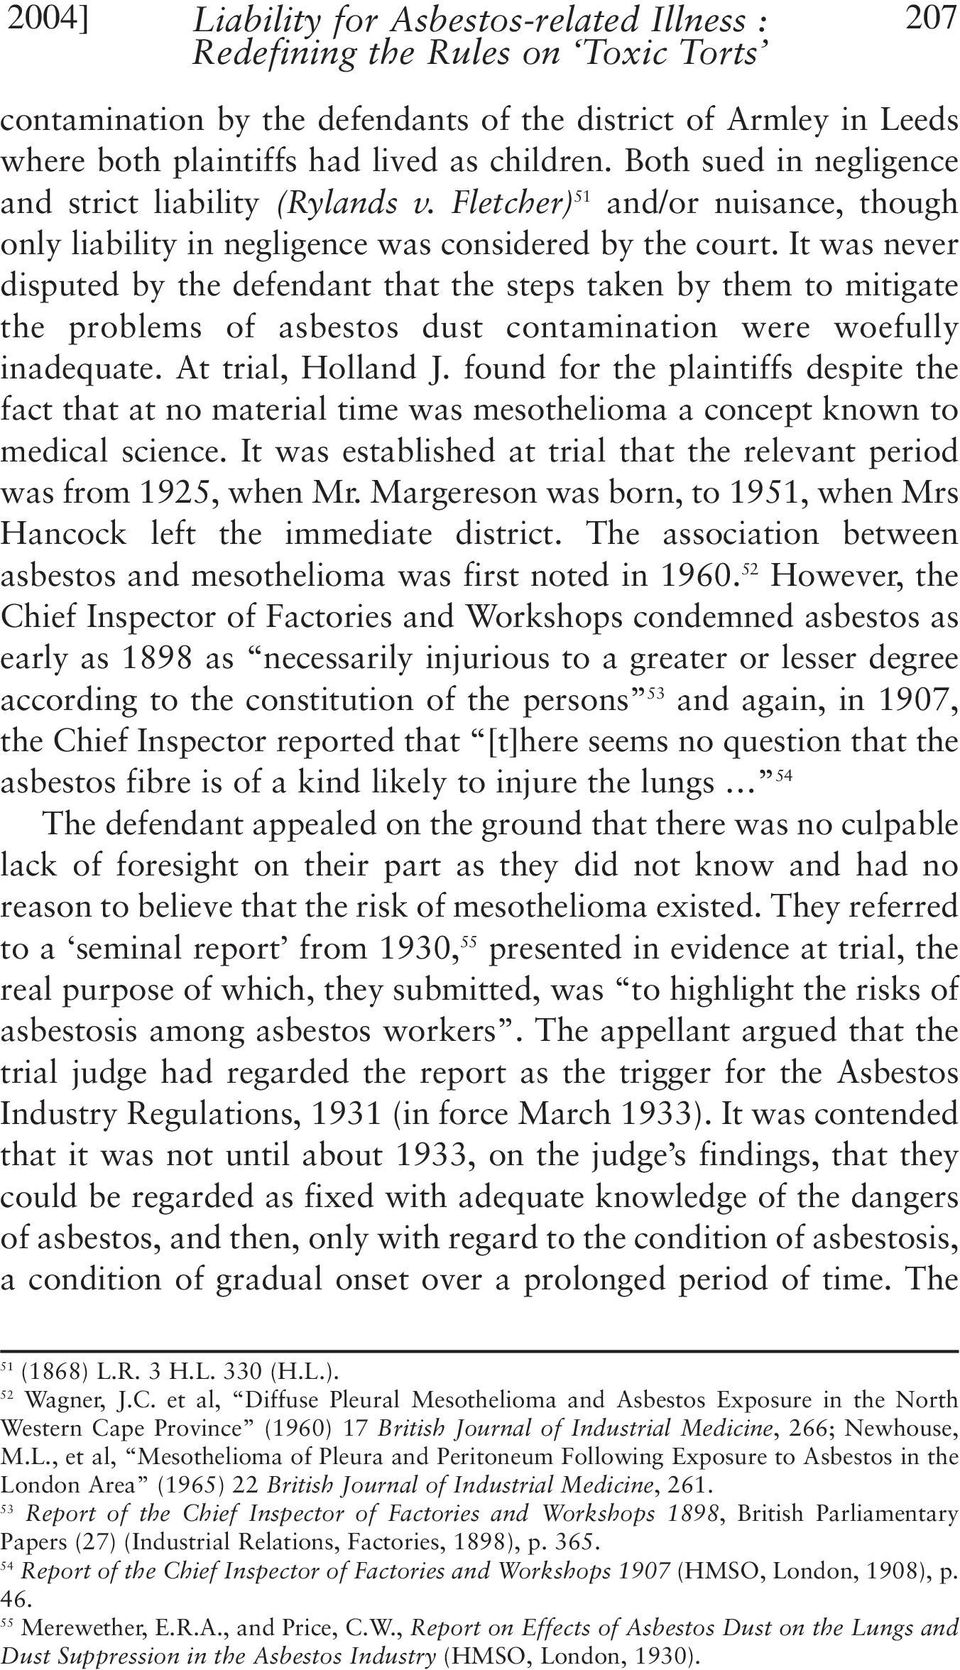 It was never disputed by the defendant that the steps taken by them to mitigate the problems of asbestos dust contamination were woefully inadequate. At trial, Holland J.